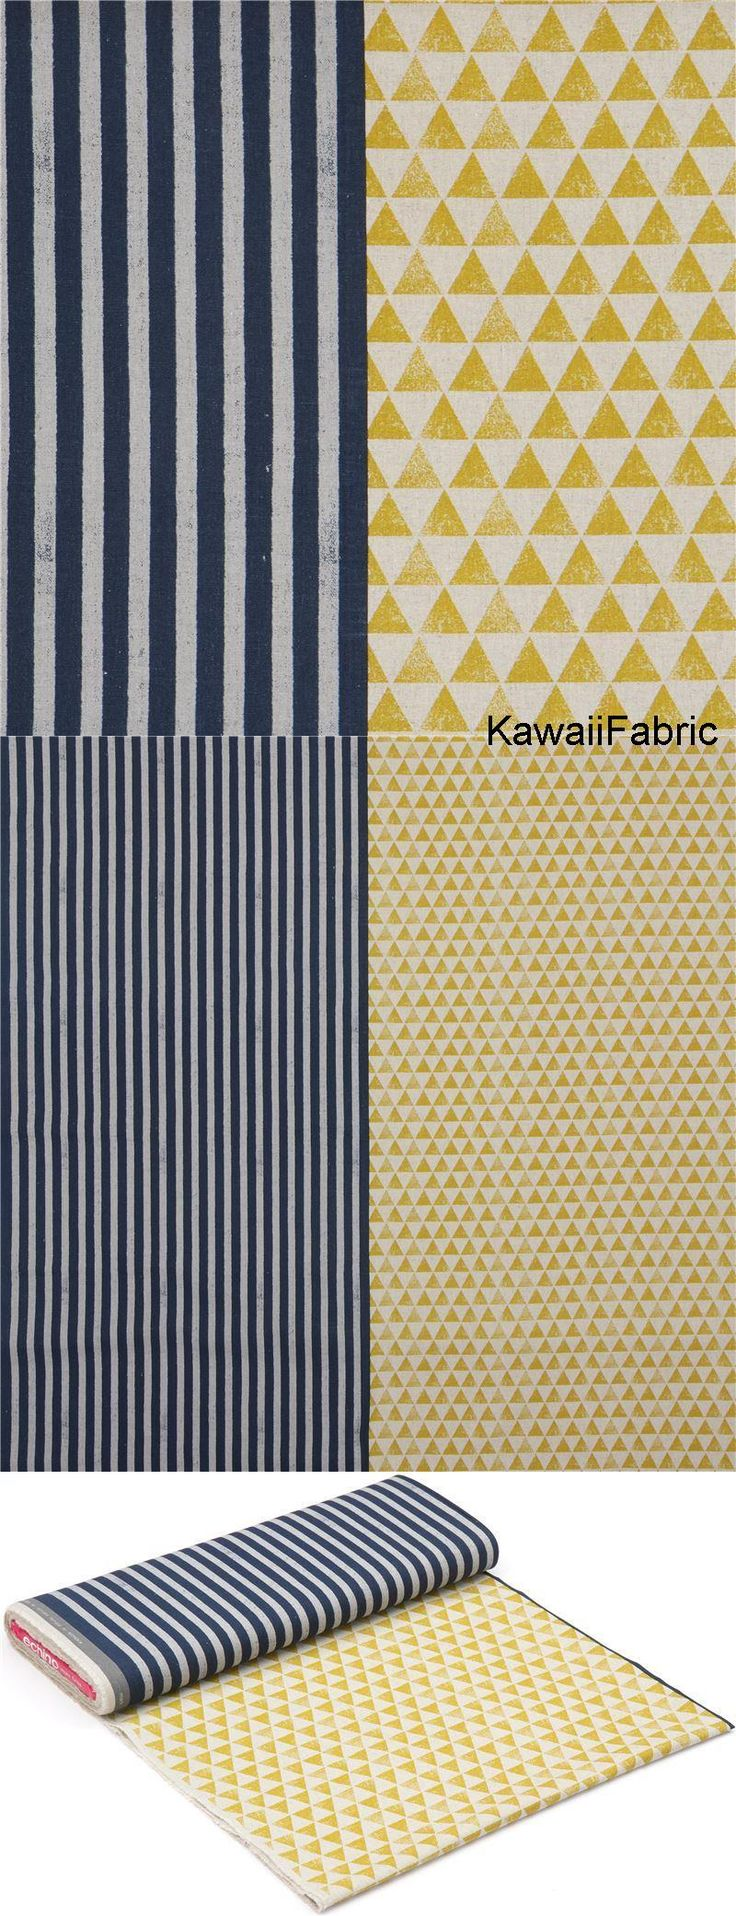 Spectacular Echino canvas fabric natural color yellow triangle with grey dark blue stripe